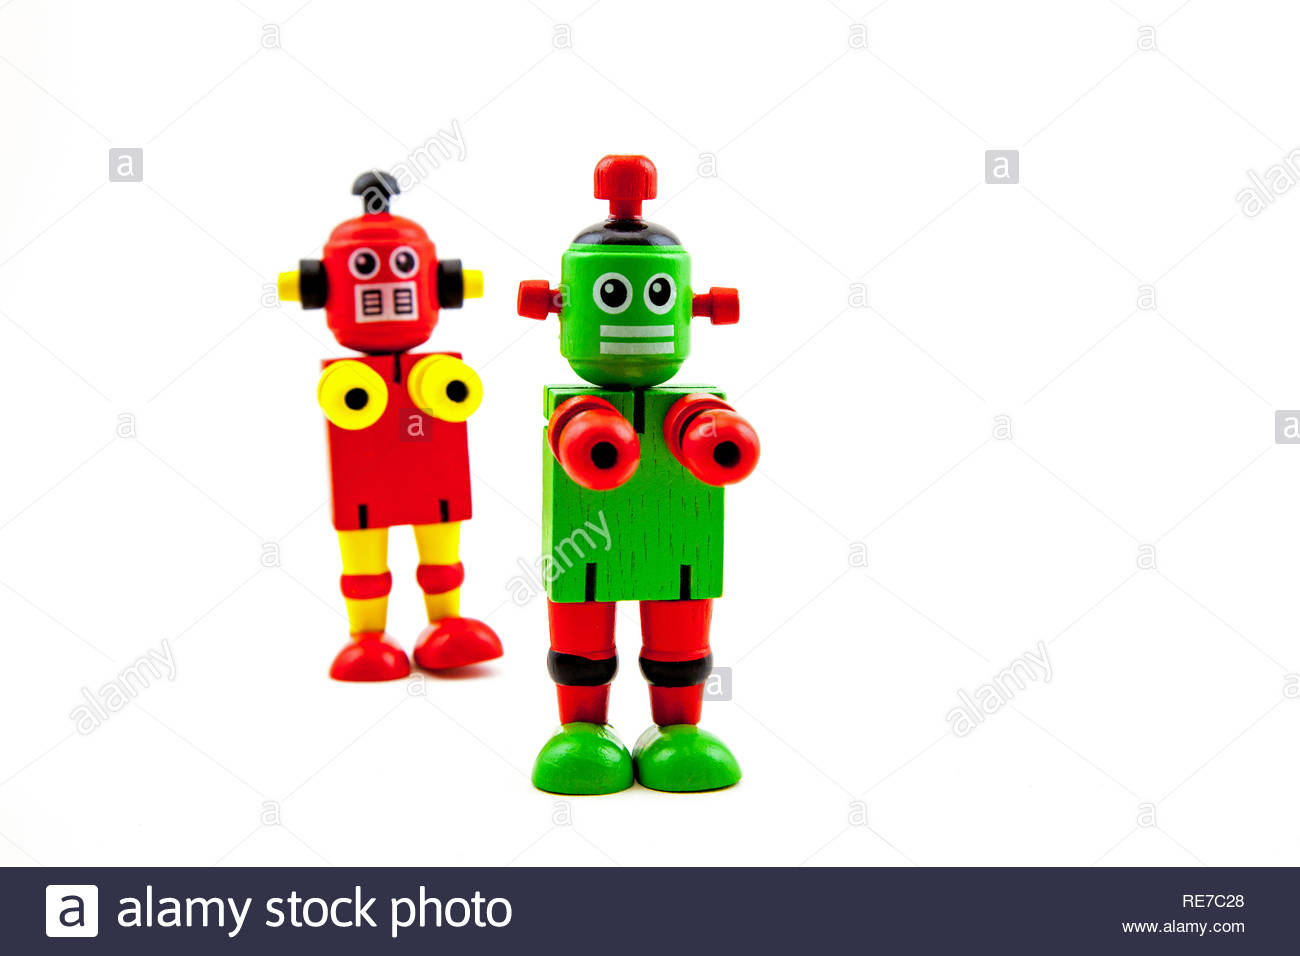 2 wooden toy robots: red/yellow behind (out of focus) and green/red to the front, reaching forward and staring ahead. Copy space on a white background - Stock Image